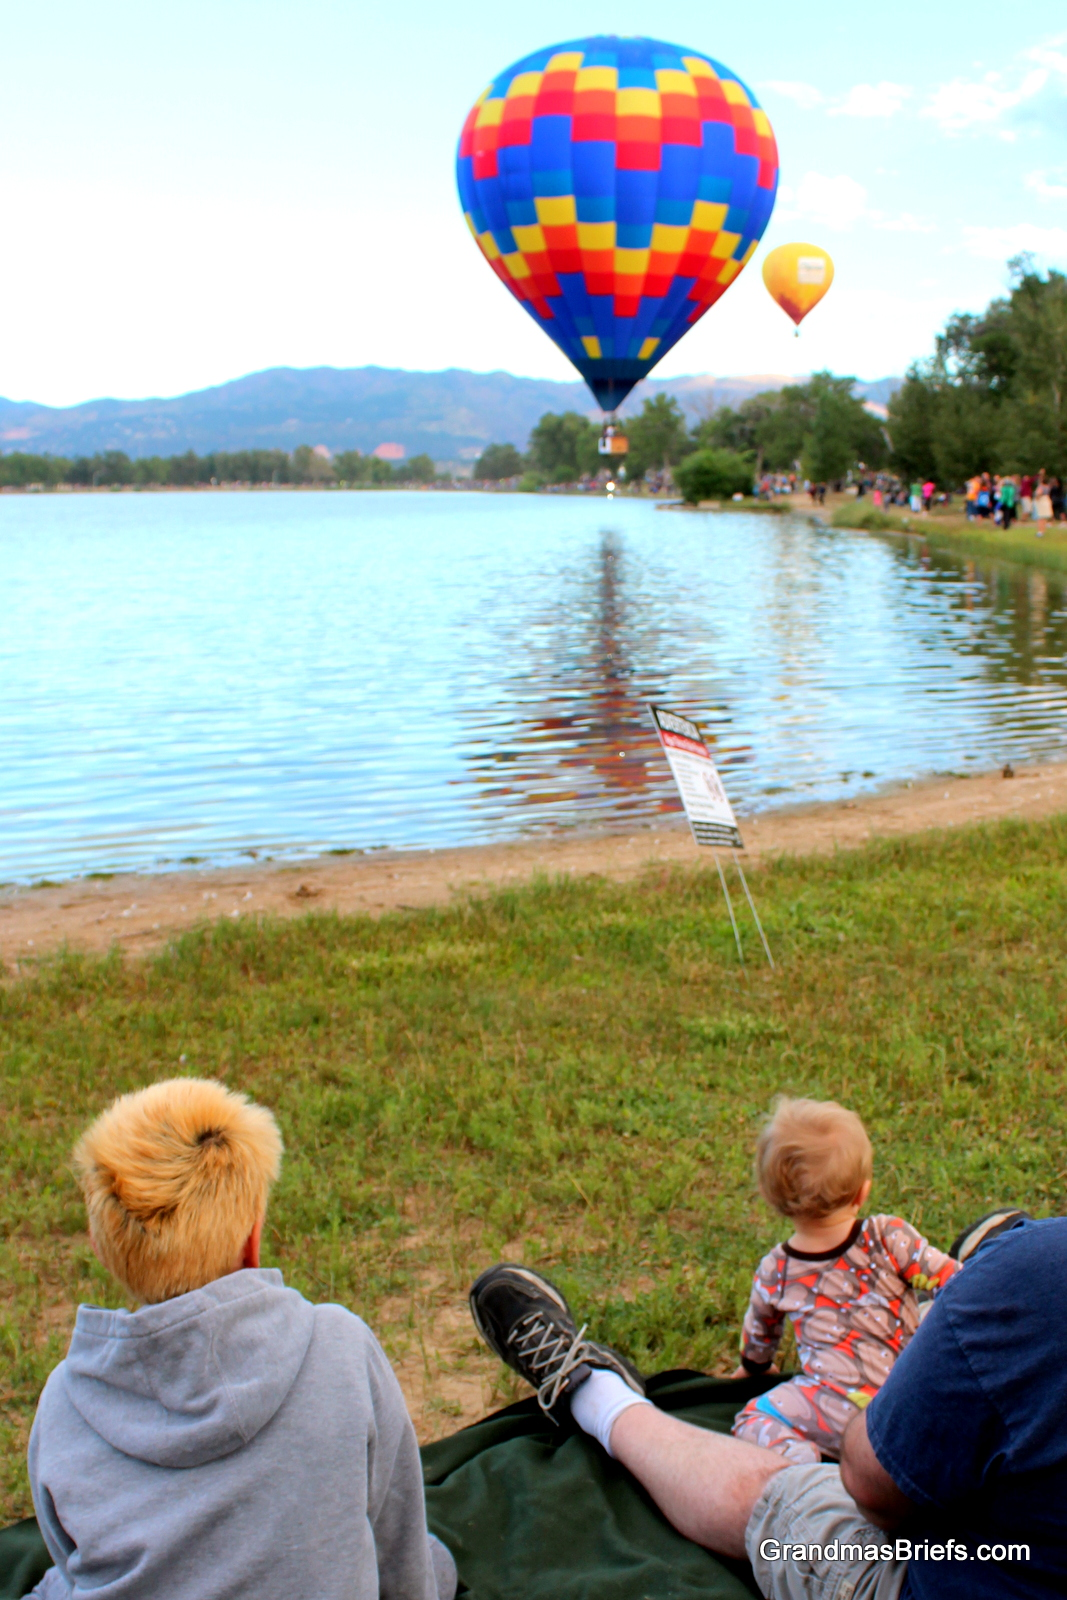 Benjamin watches balloons emerge over treetops, with brother (another b!) james and daddy